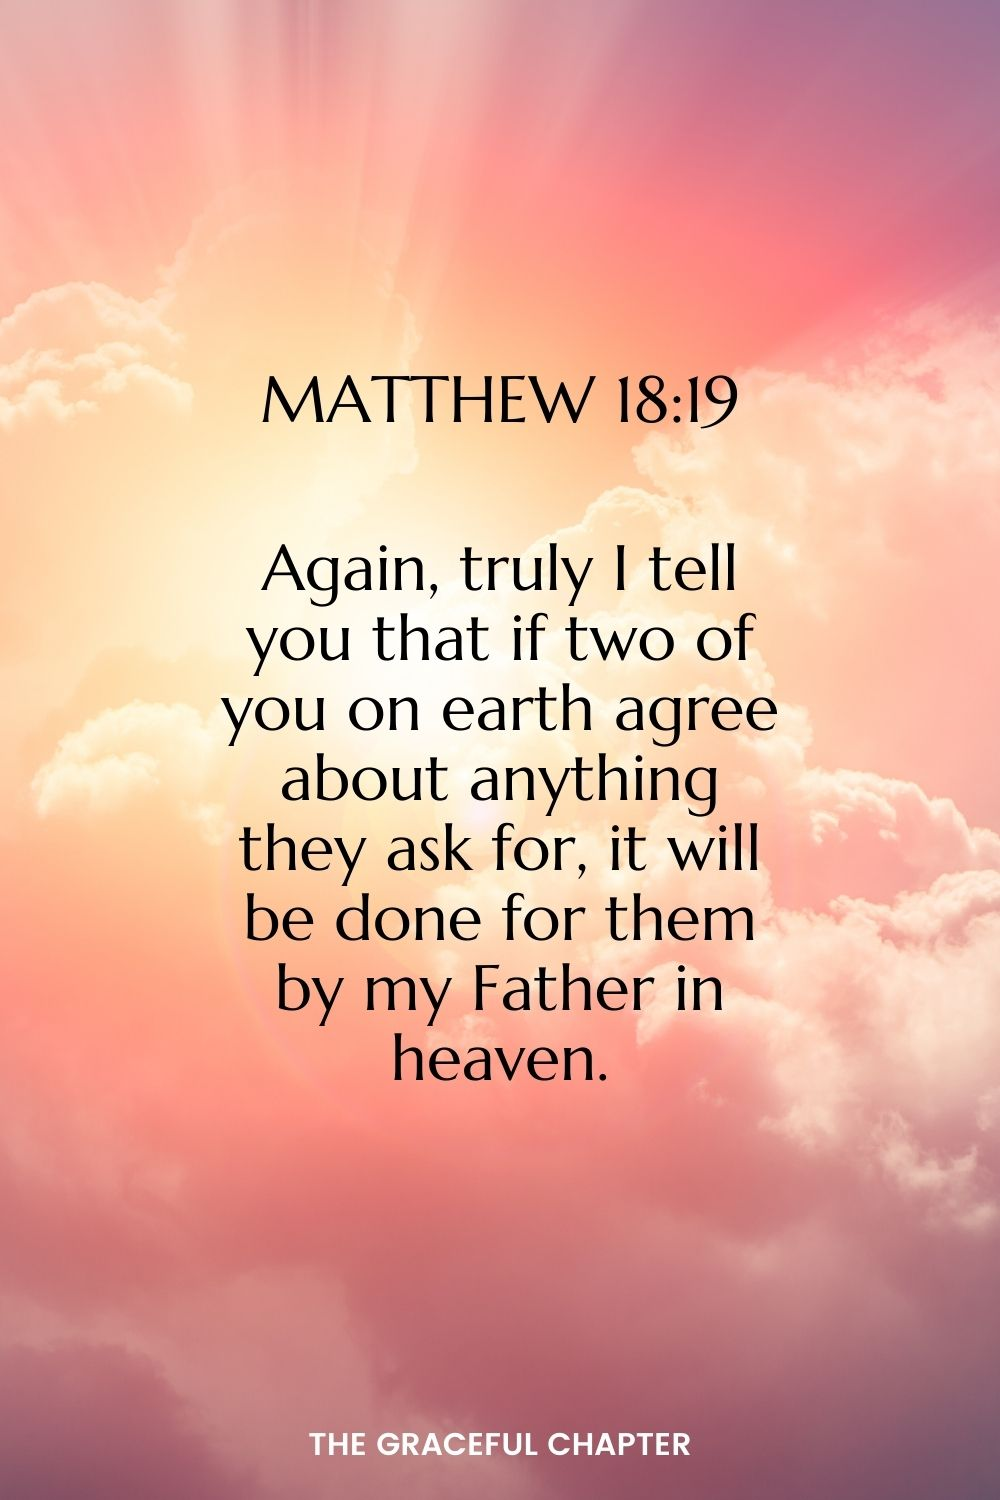 Again, truly I tell you that if two of you on earth agree about anything they ask for, it will be done for them by my Father in heaven.  Matthew 18:19